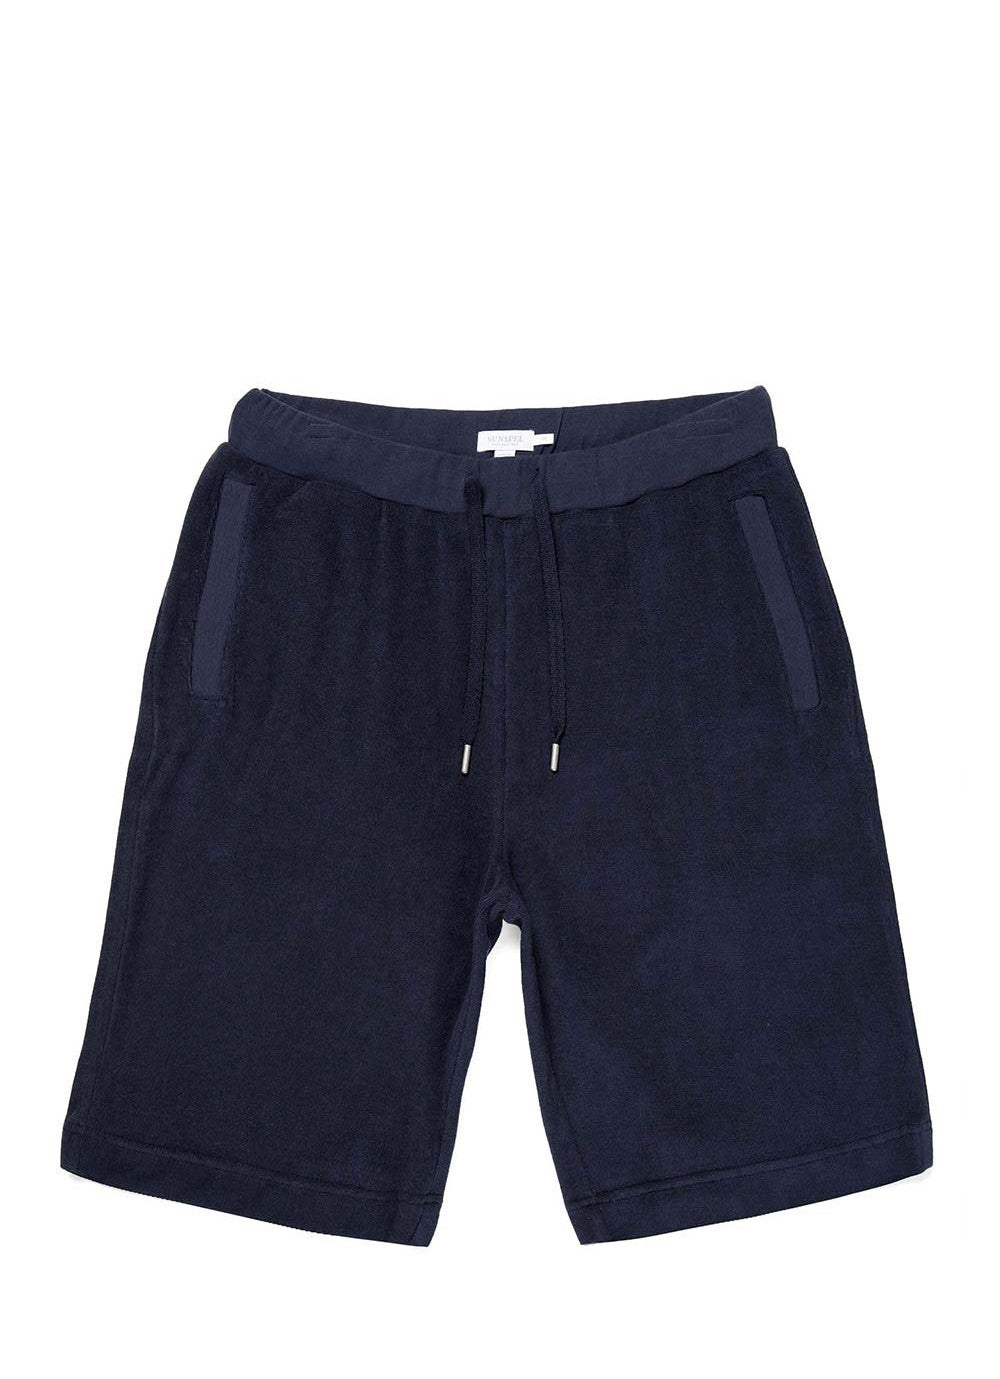 Organic Cotton Towelling Shorts